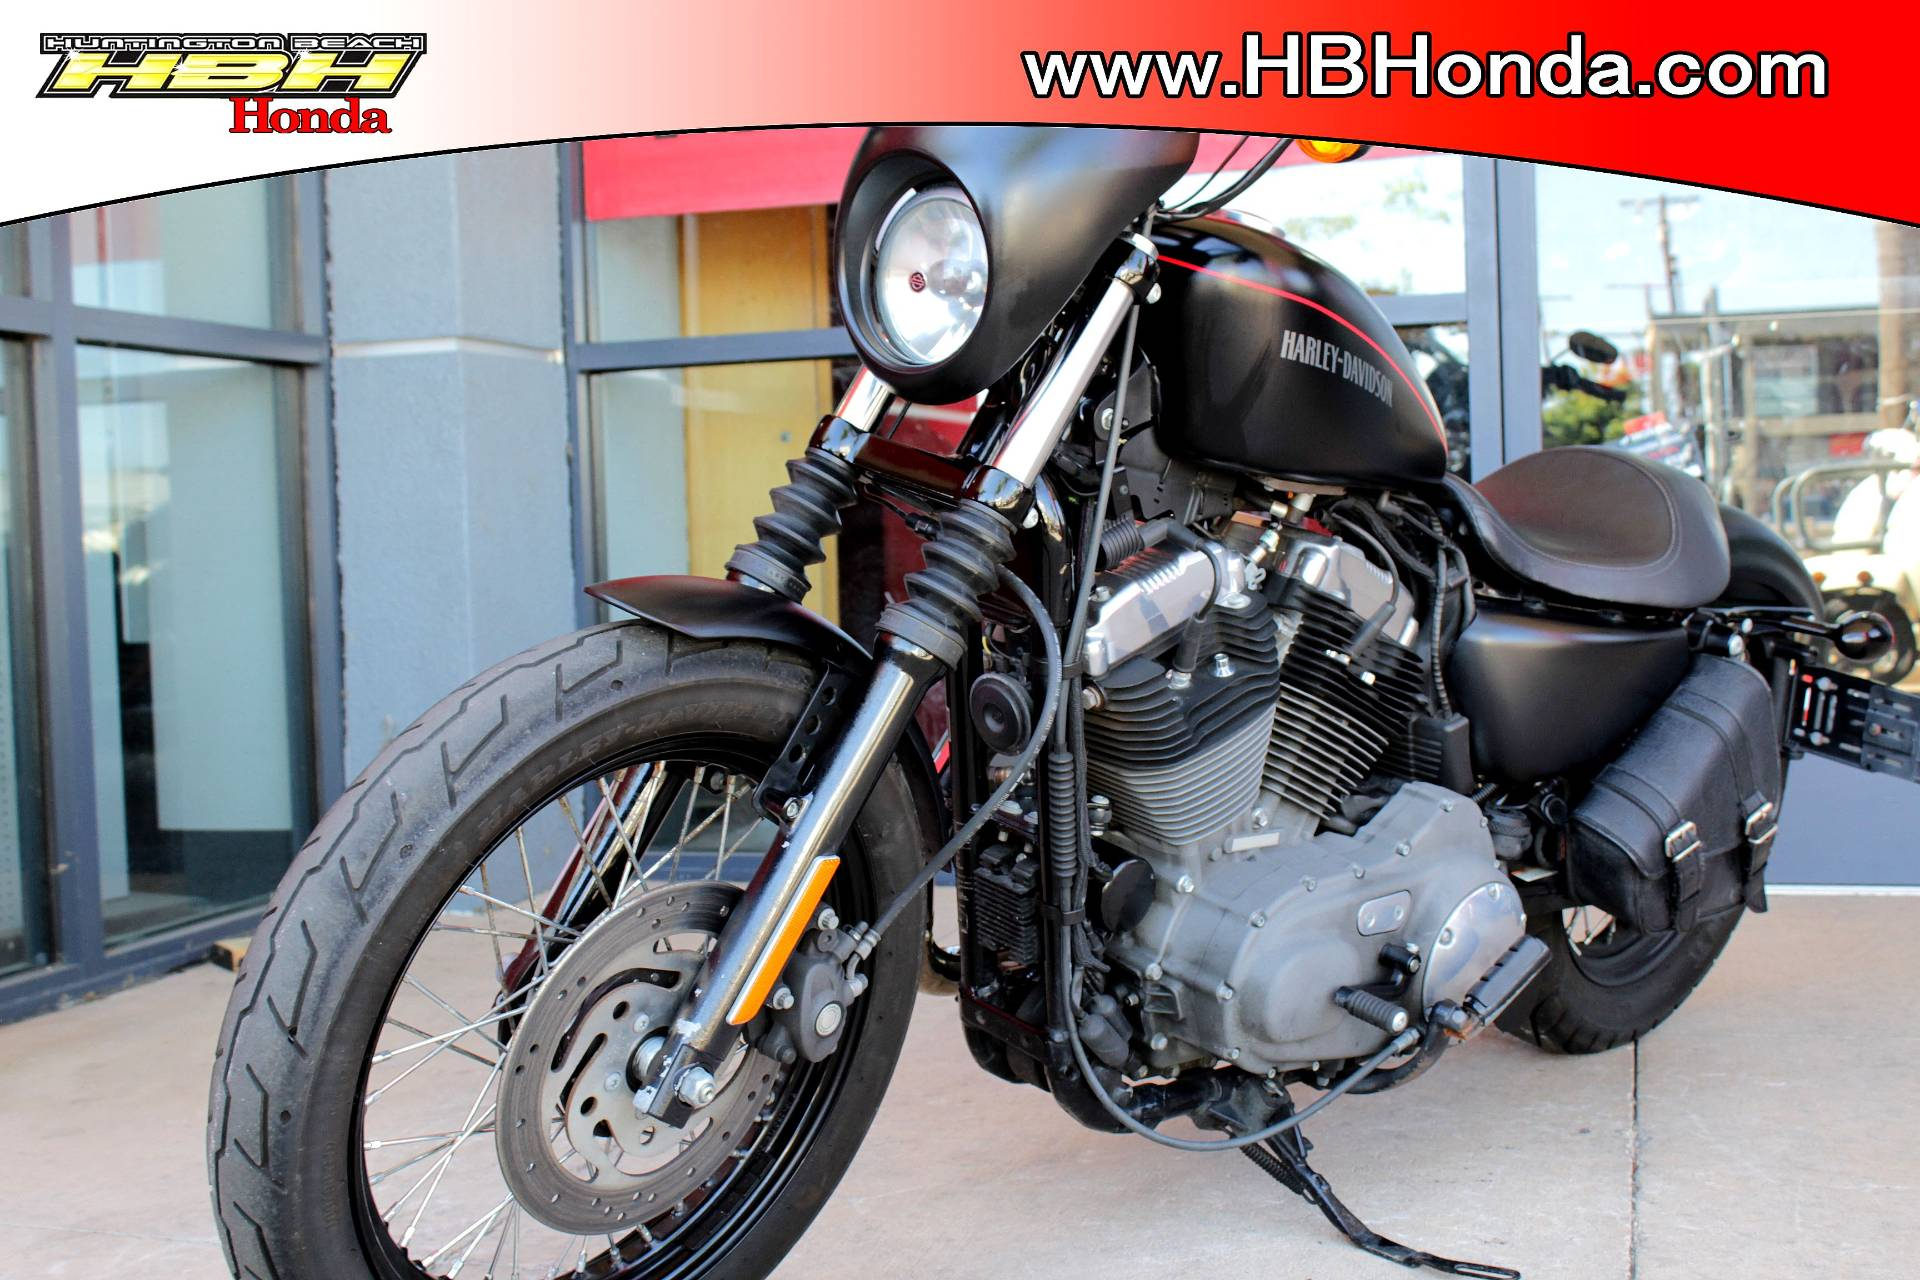 2012 Harley-Davidson Sportster® 1200 Nightster® in Huntington Beach, California - Photo 6